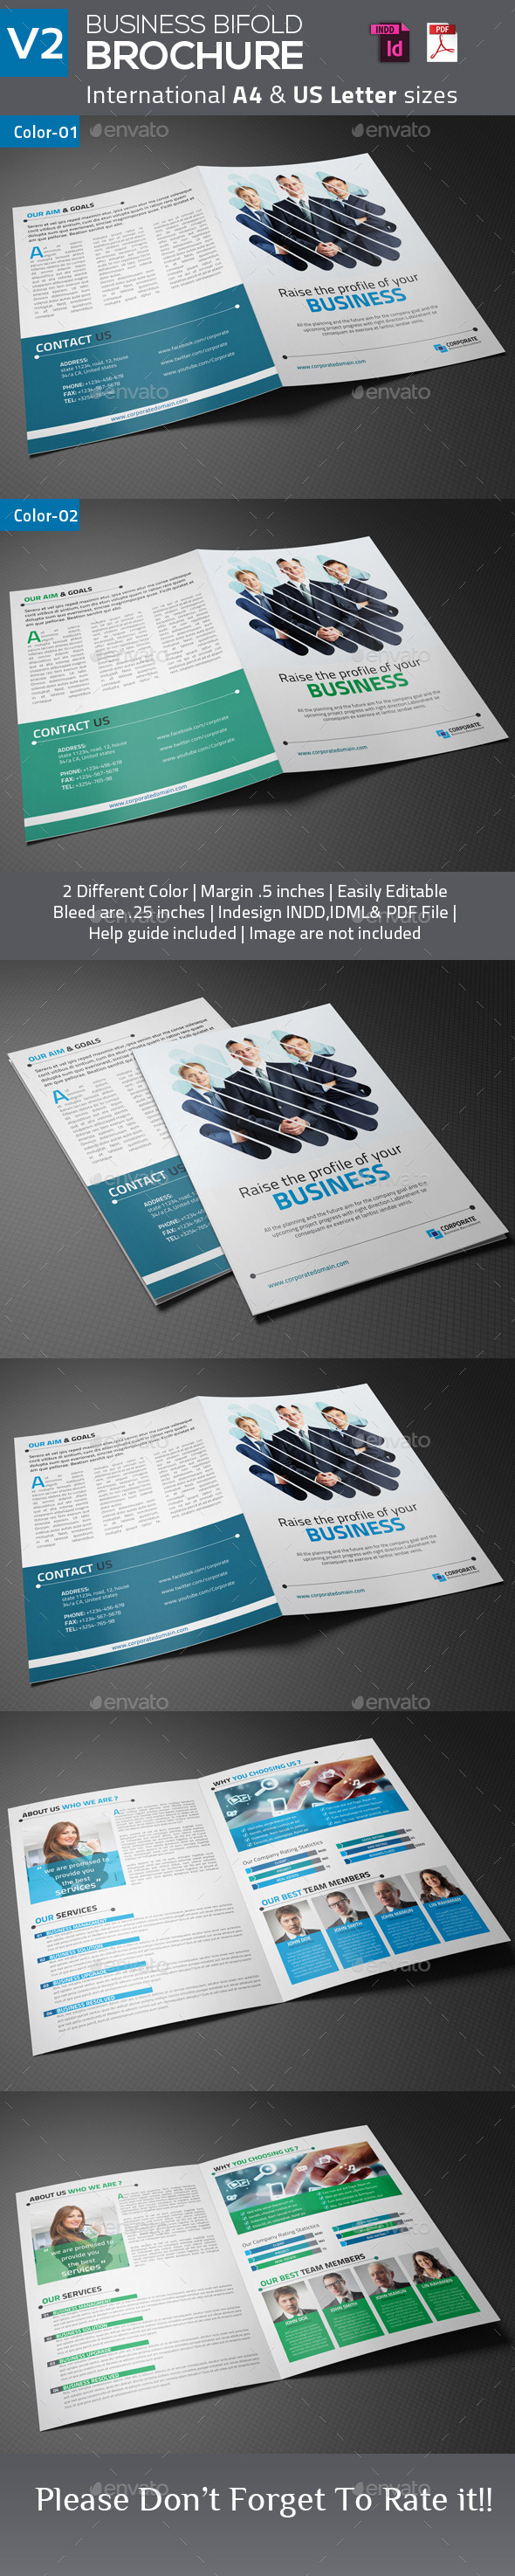 GraphicRiver Business Bifold Brochure V2 9164495